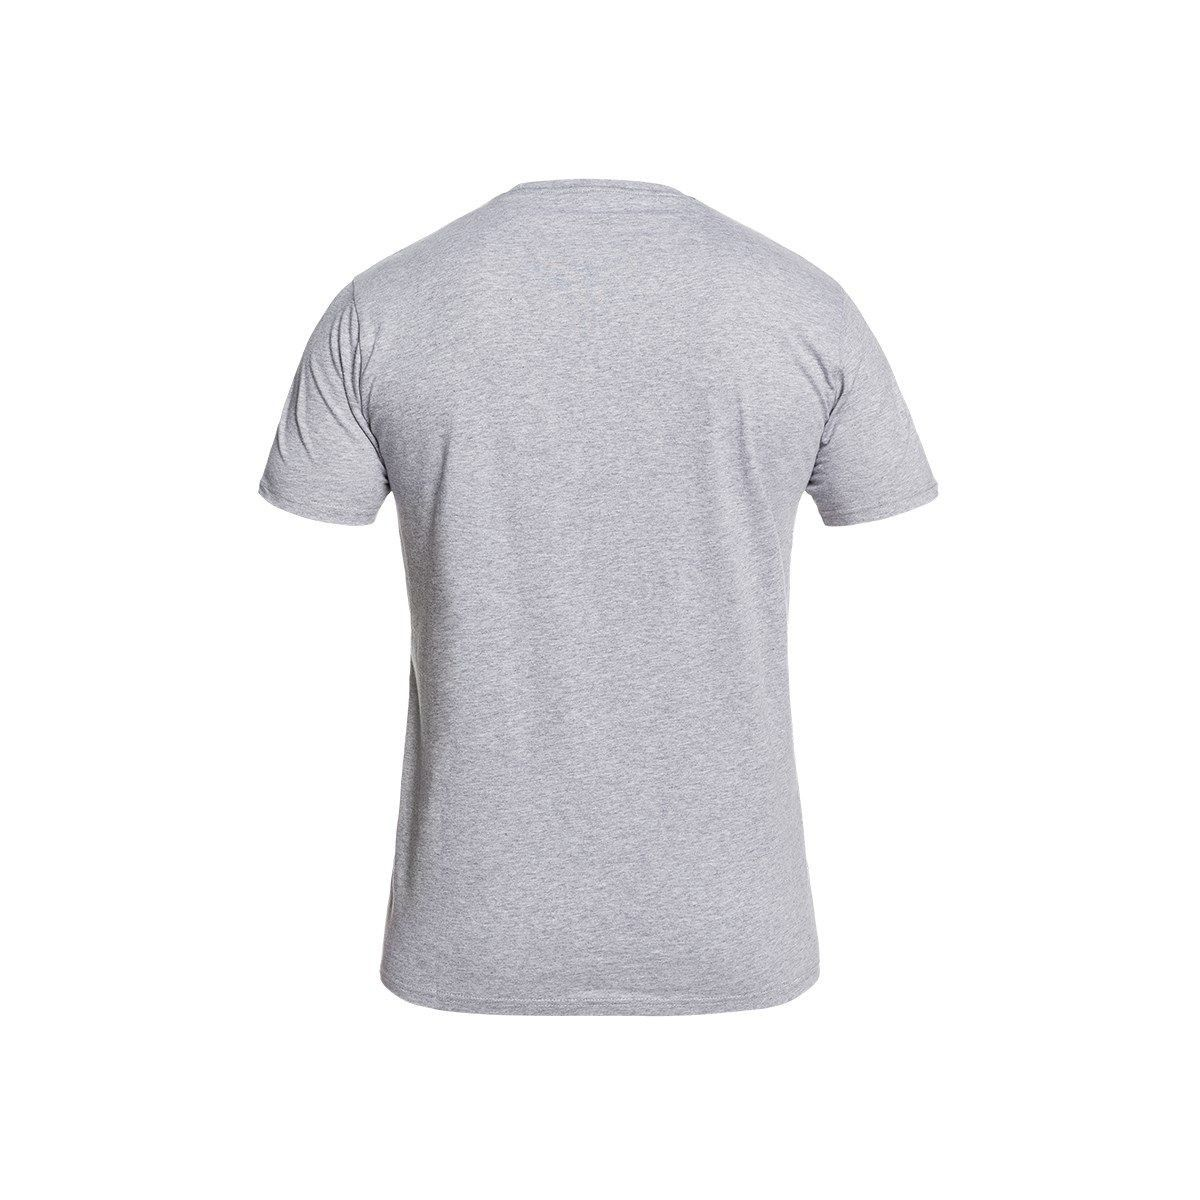 Rugby Shirt TailleL;m;s;4;xxl;6;4xlProducts Couple T Homme YDIEWH29